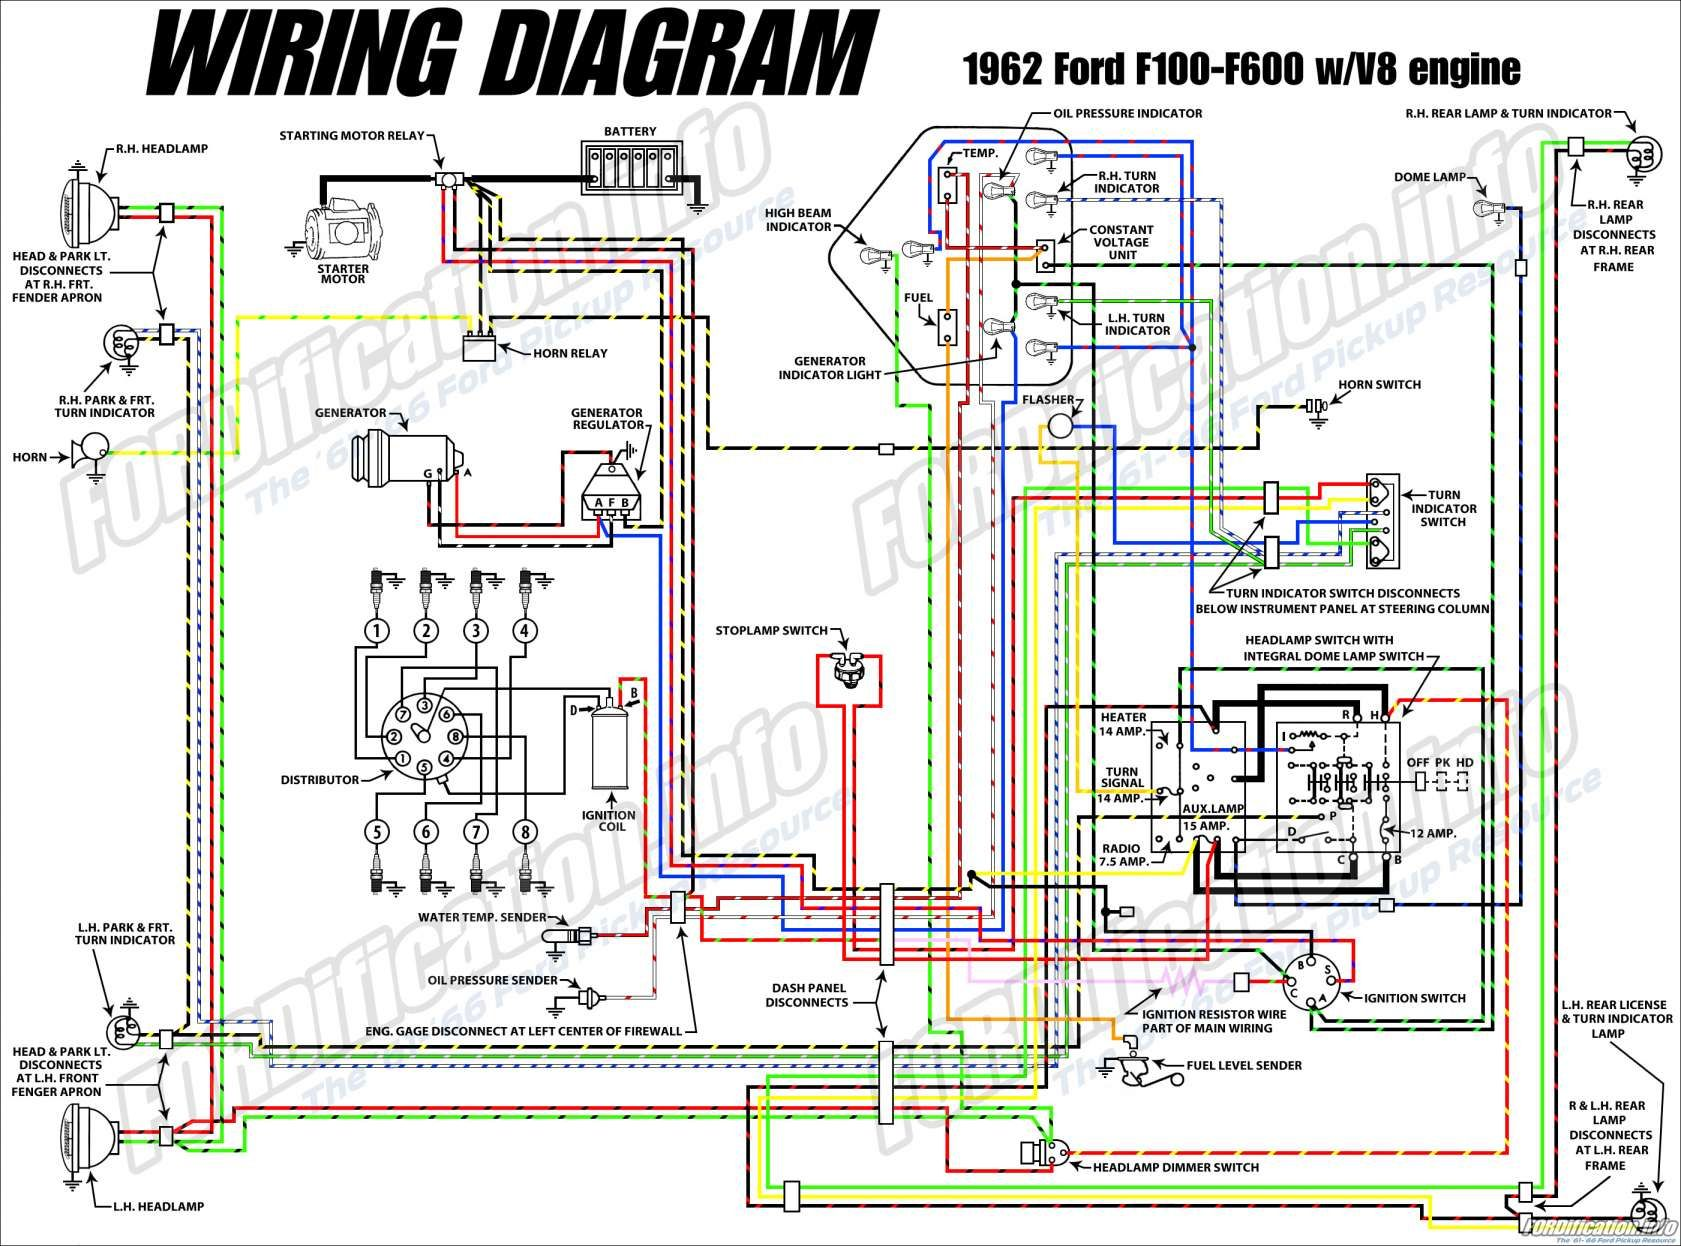 Wiring Schematic For 1963 Ford F 100 - Data Wiring Pair library-summer -  library-summer.newmorpheus.it | Wiring Schematic For 1963 Ford F100 |  | newmorpheus.it